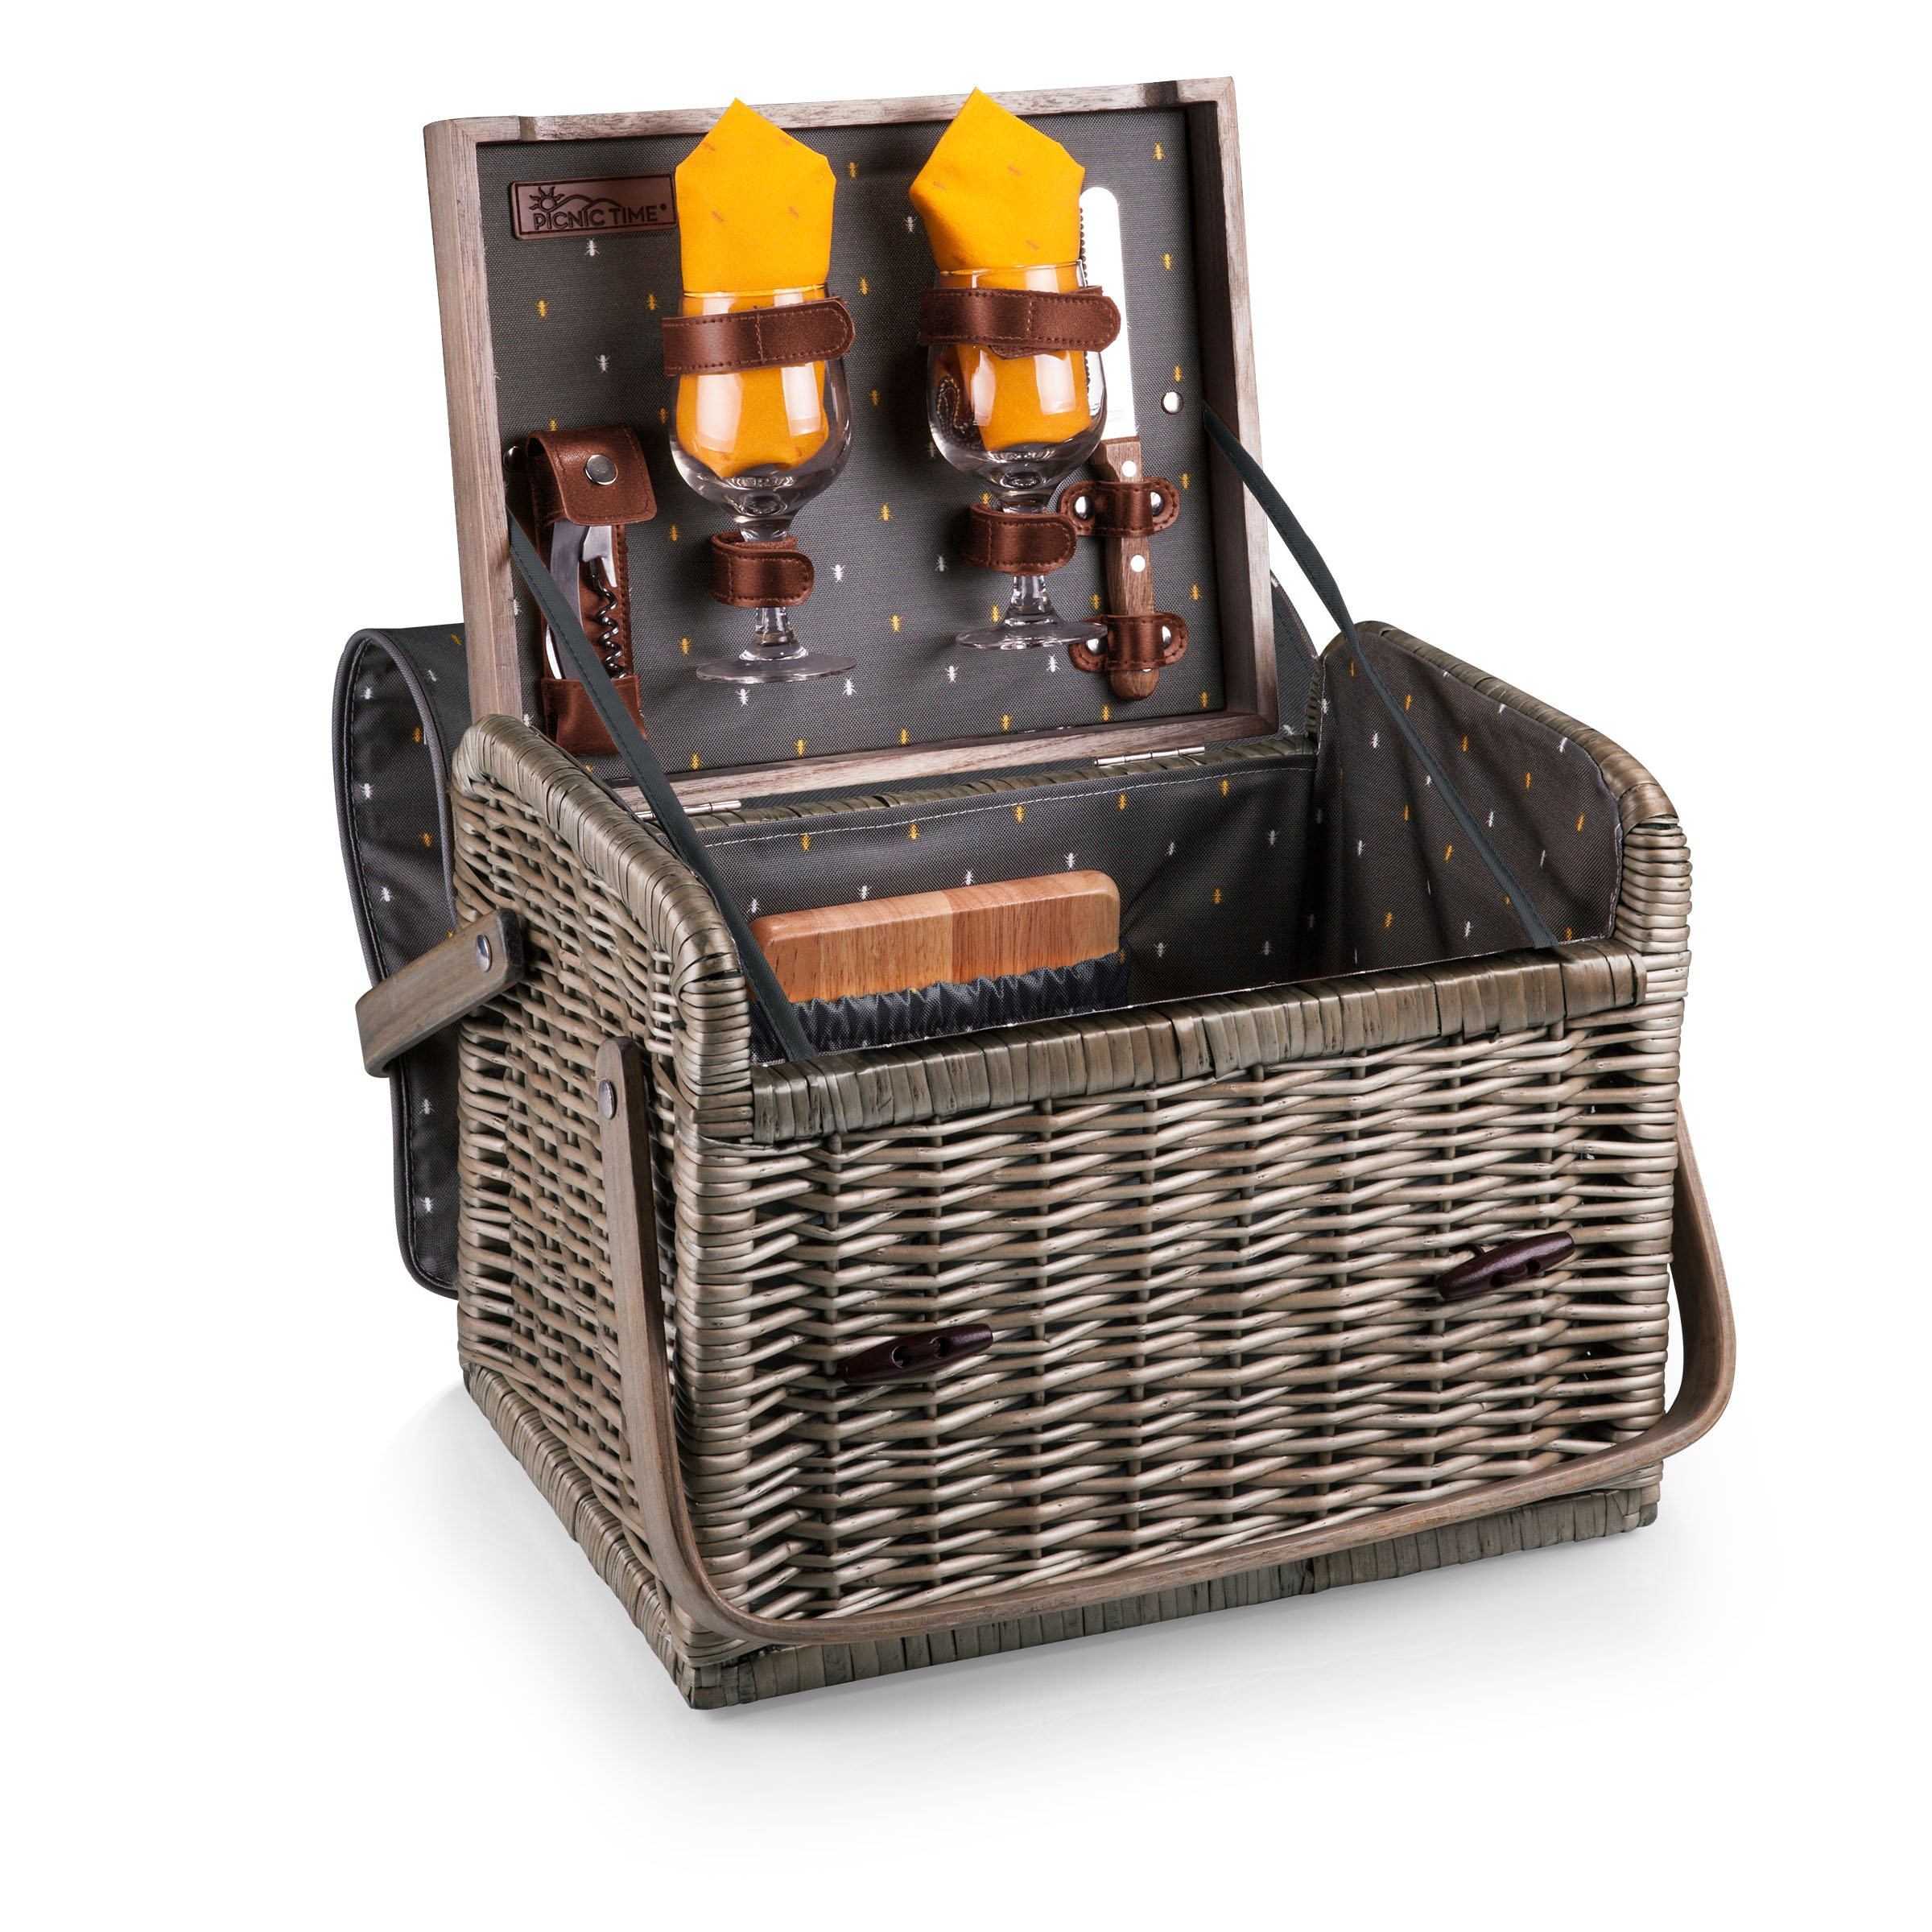 PICNIC TIME Picnic time kabrio picnic basket with wine and cheese service for two anthology collection, 1.1 Pound